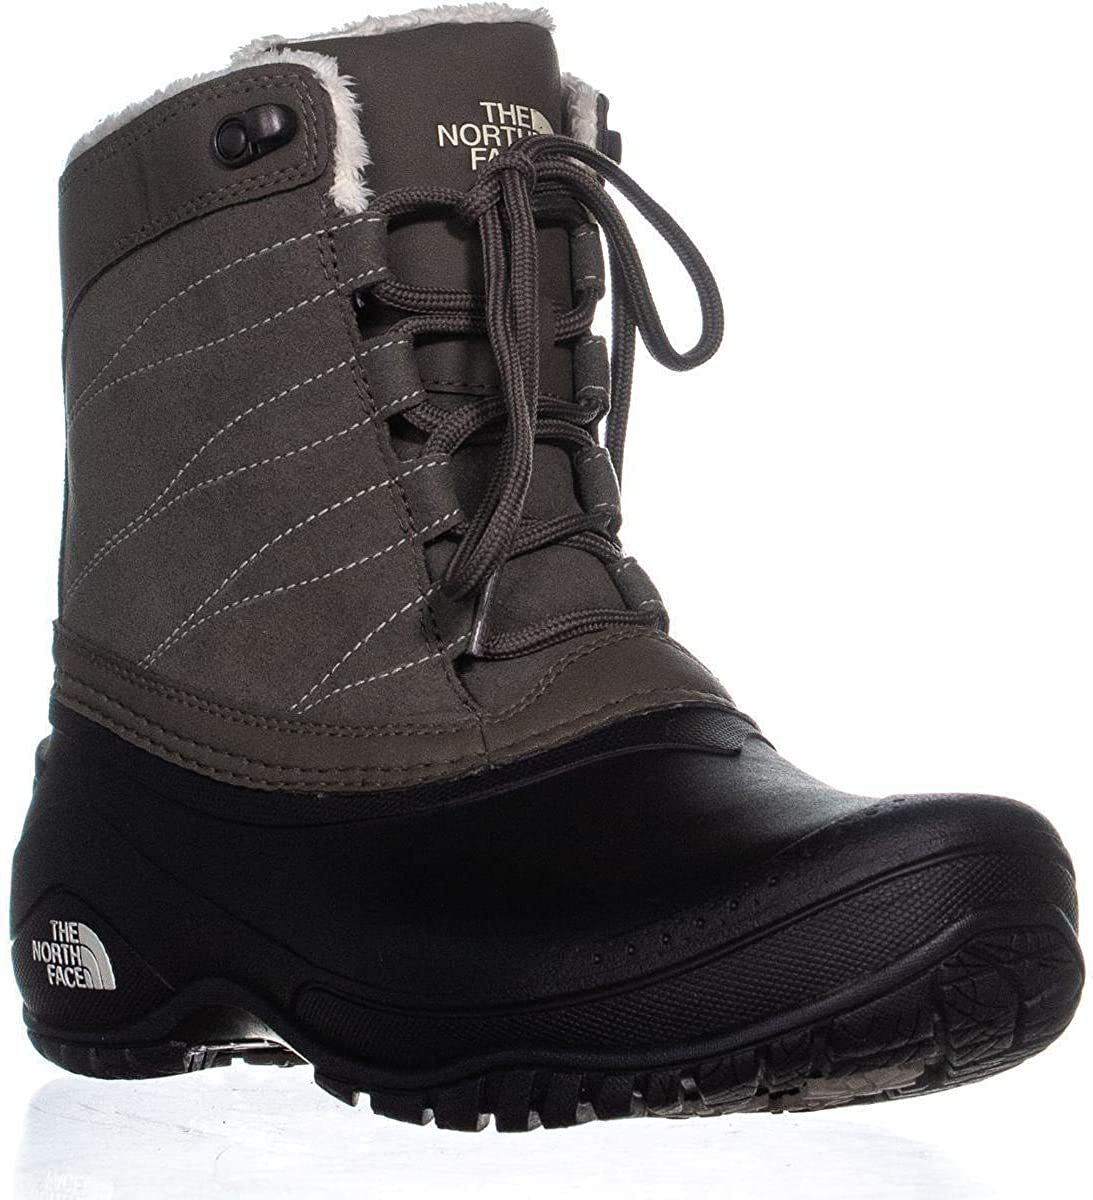 The North Face Womens Stormkat Closed Toe Ankle Cold Weather Boots